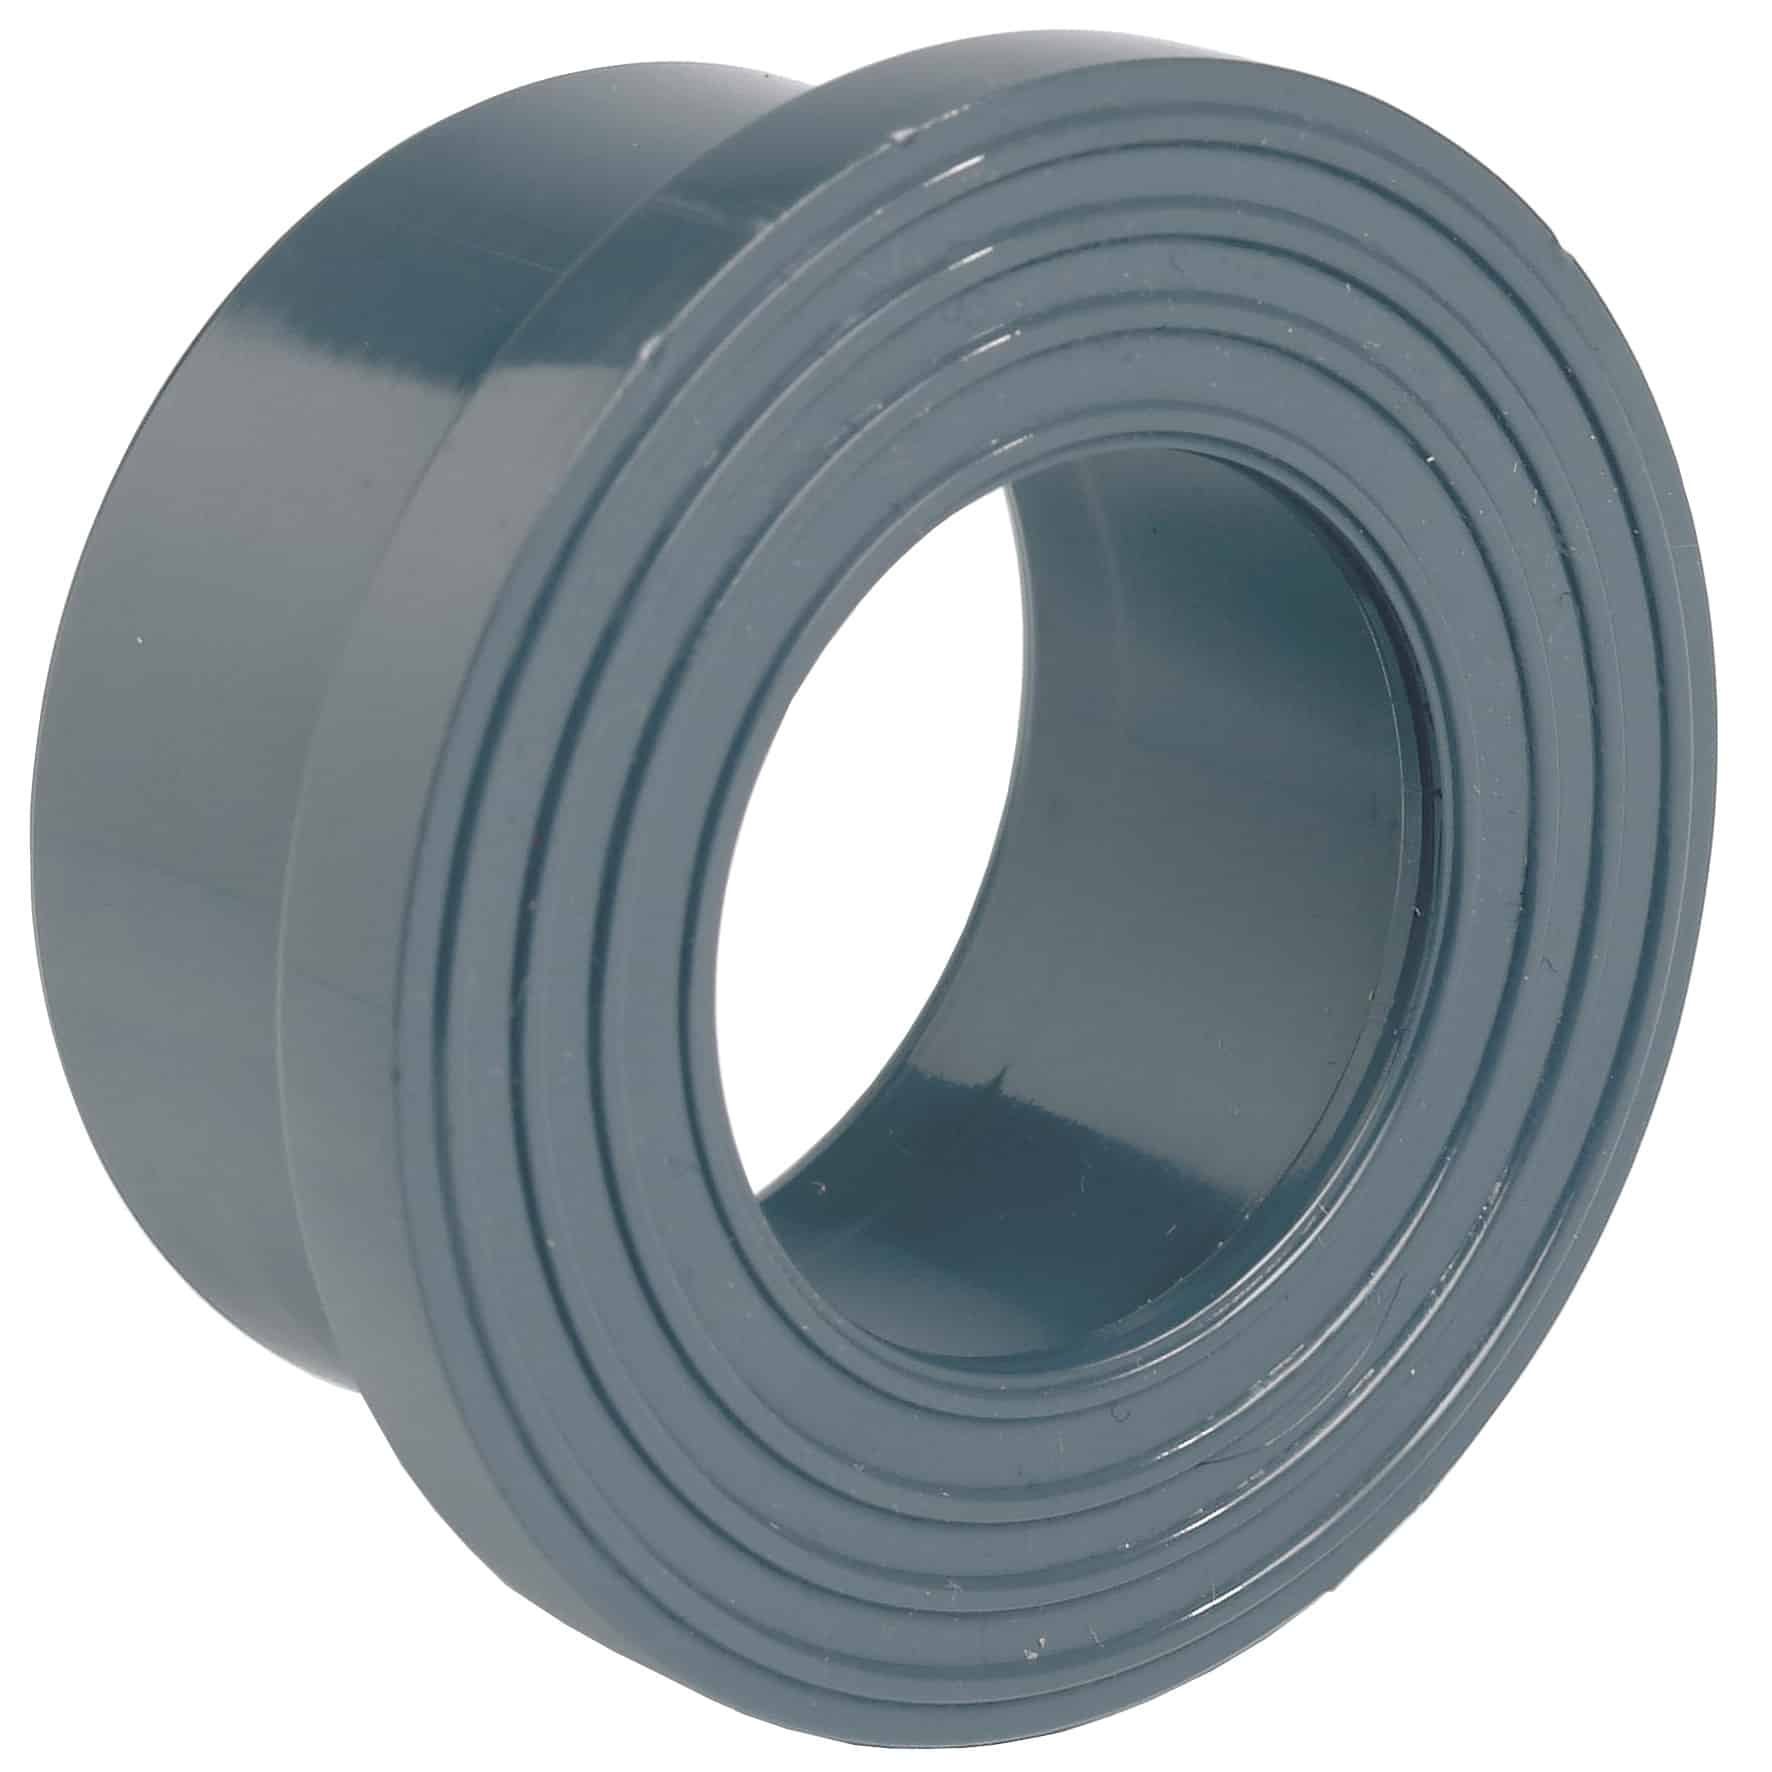 PVC-U serrated face stub flange - EFFAST - 100% Made in Italy